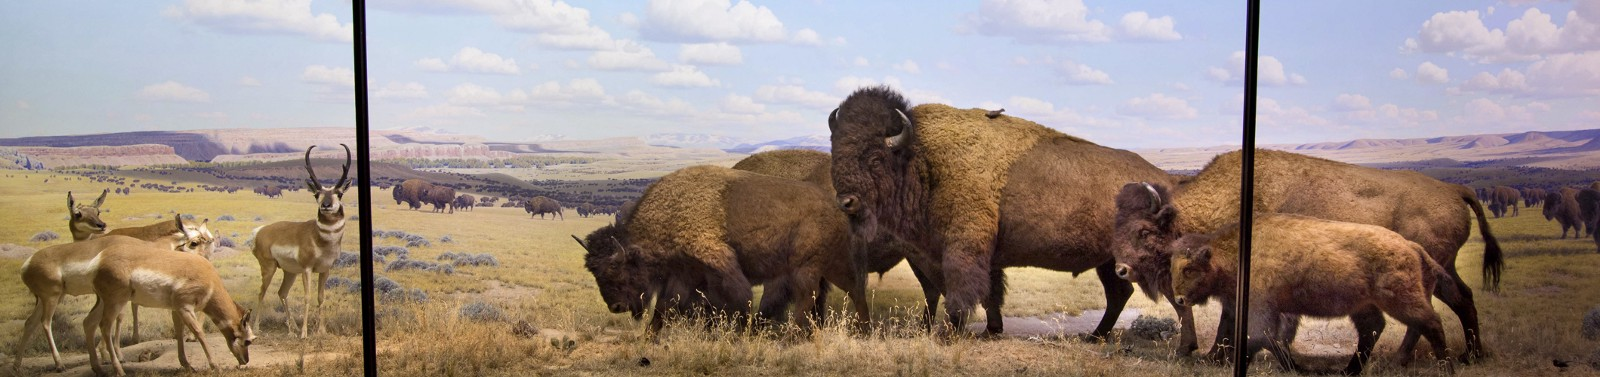 Bison group, October afternoon, Wyoming. AMNH.